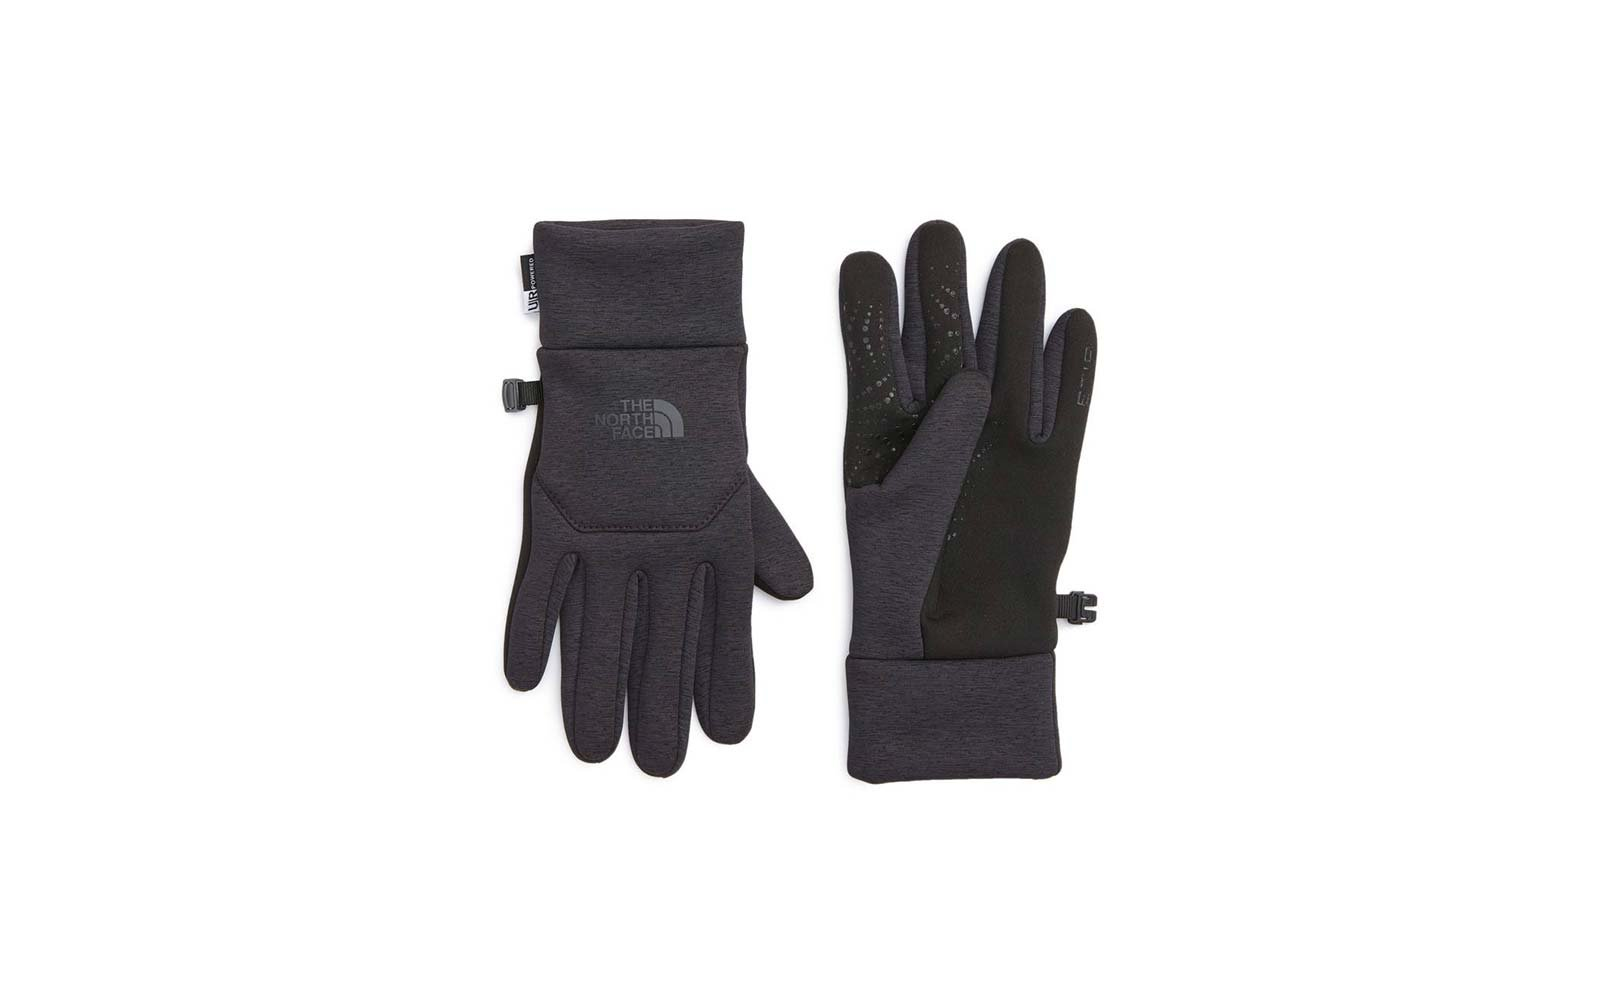 The North Face fleece tech fingertip gloves